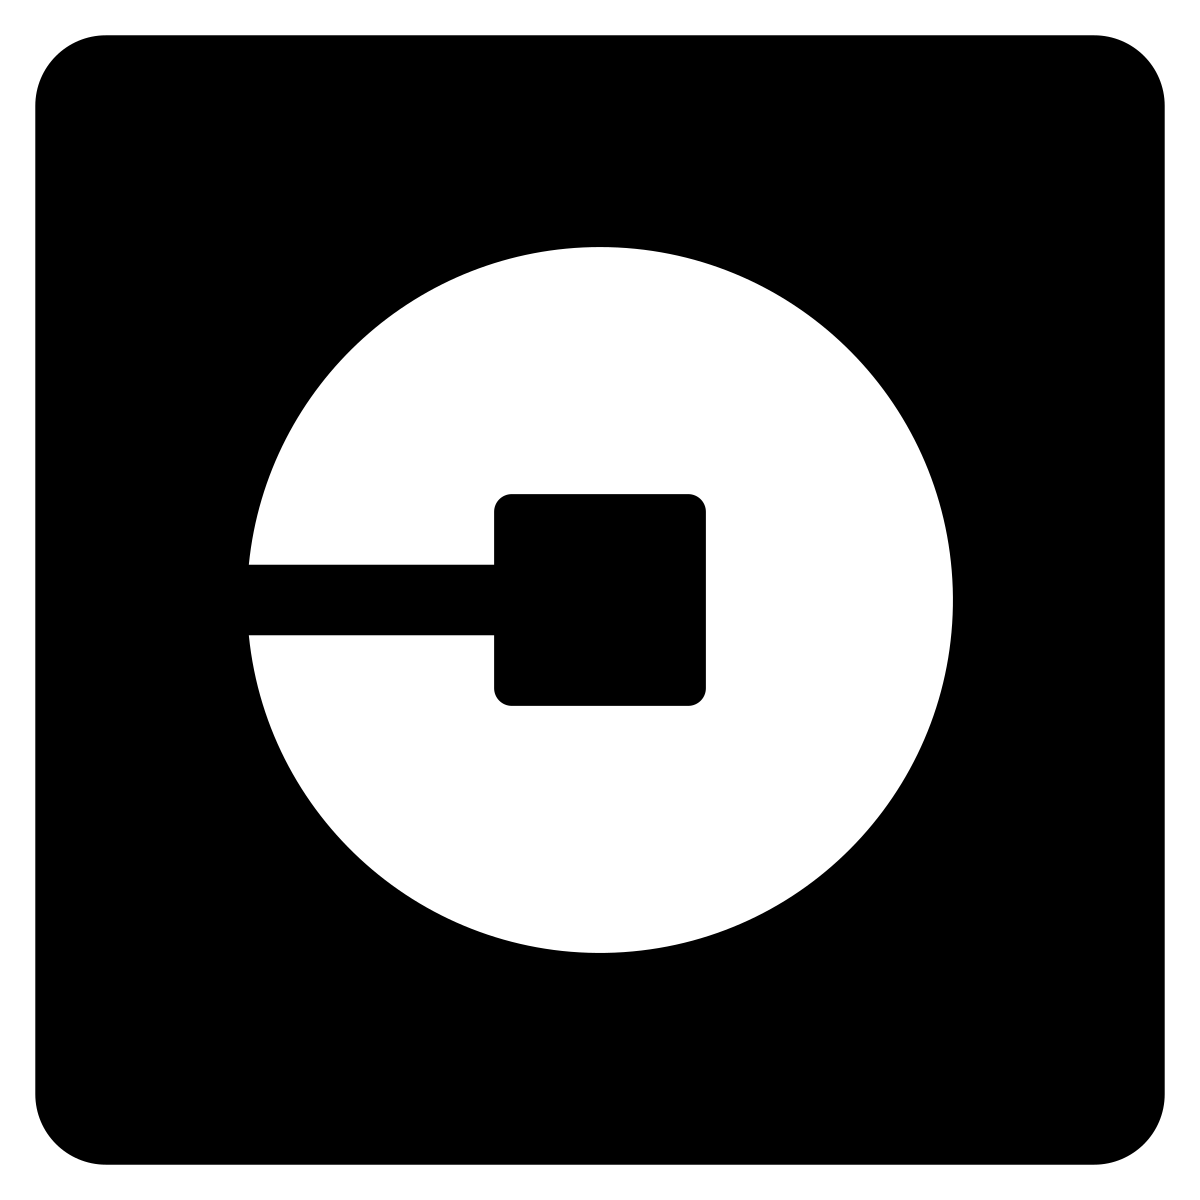 photograph about Printable Uber Logo known as Uber Indication Printable - Mary Rosh